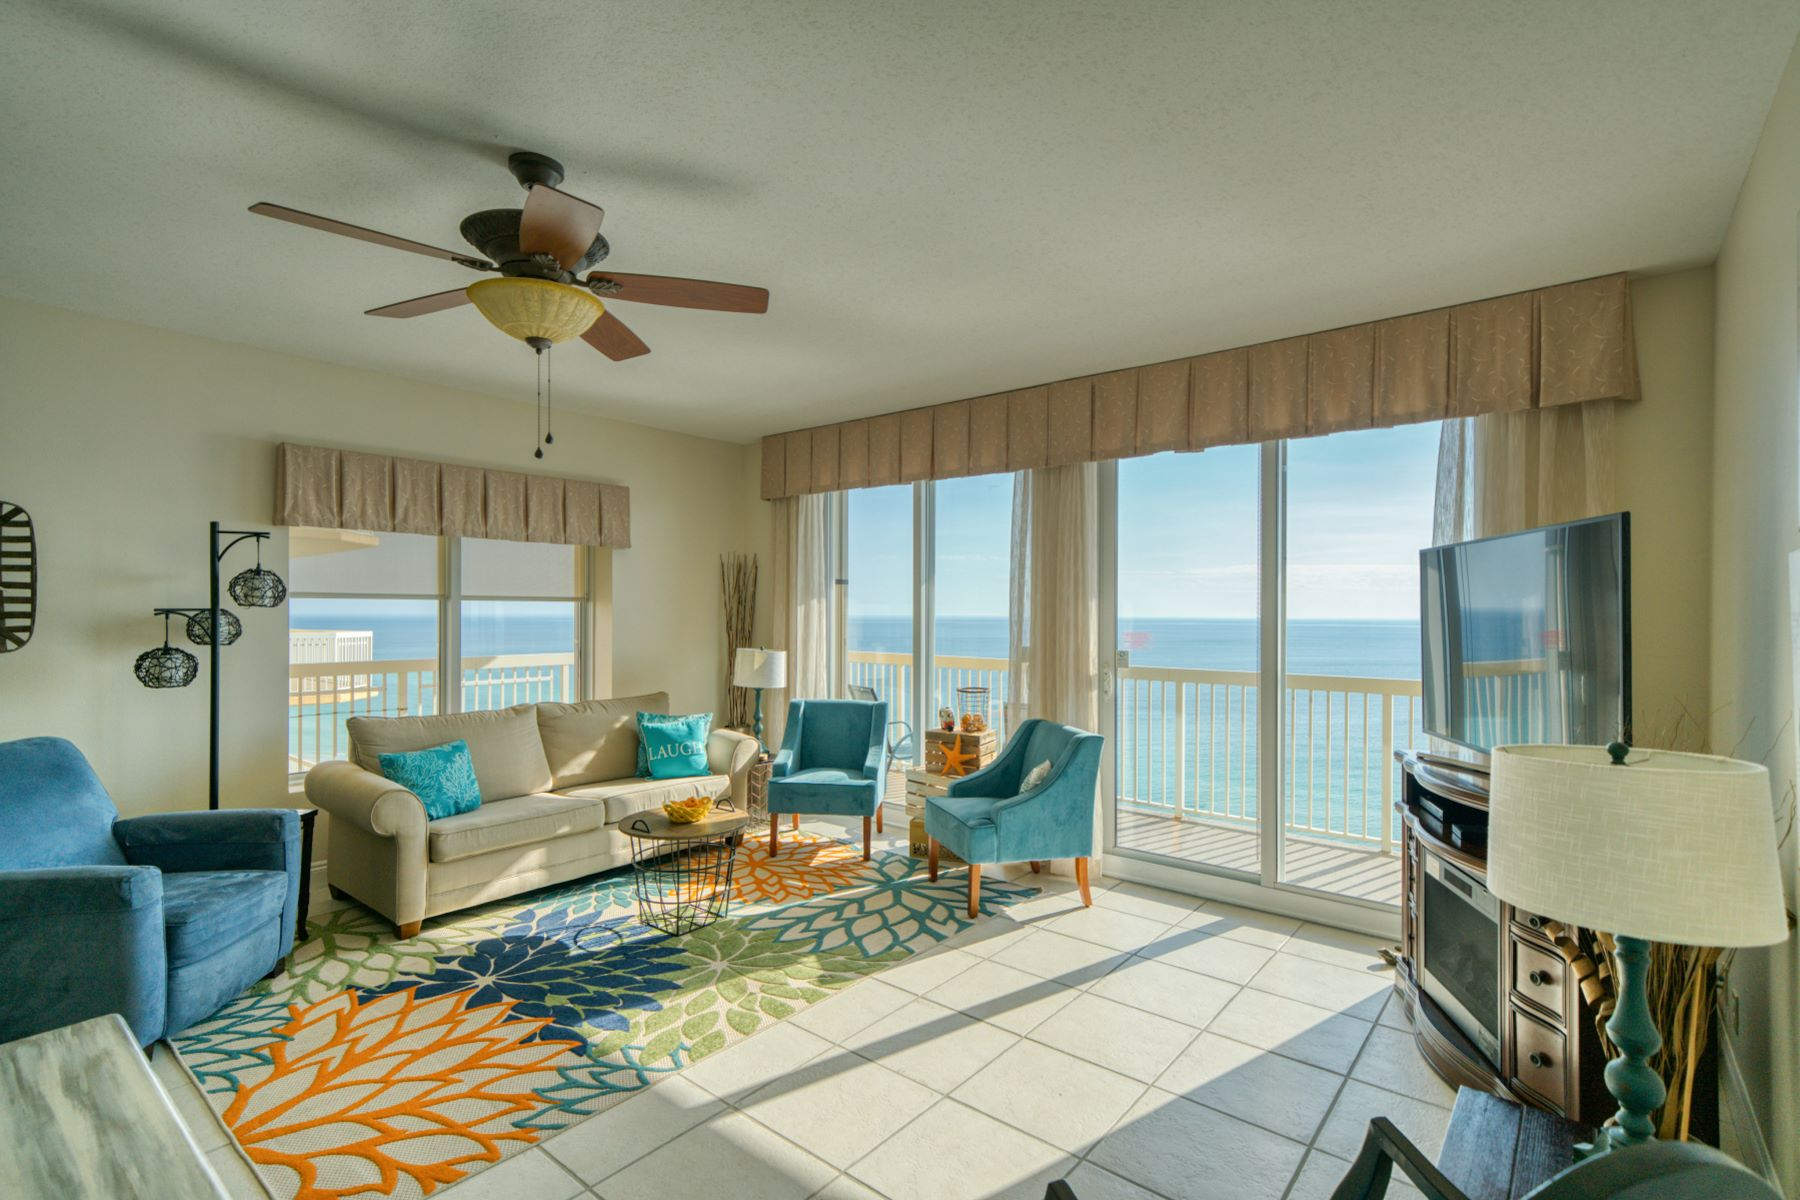 Condominiums for Sale at Panoramic Gulf Views From This Sought-After Corner Condo 15817 Front Beach Road 2-1901 Panama City Beach, Florida 32413 United States